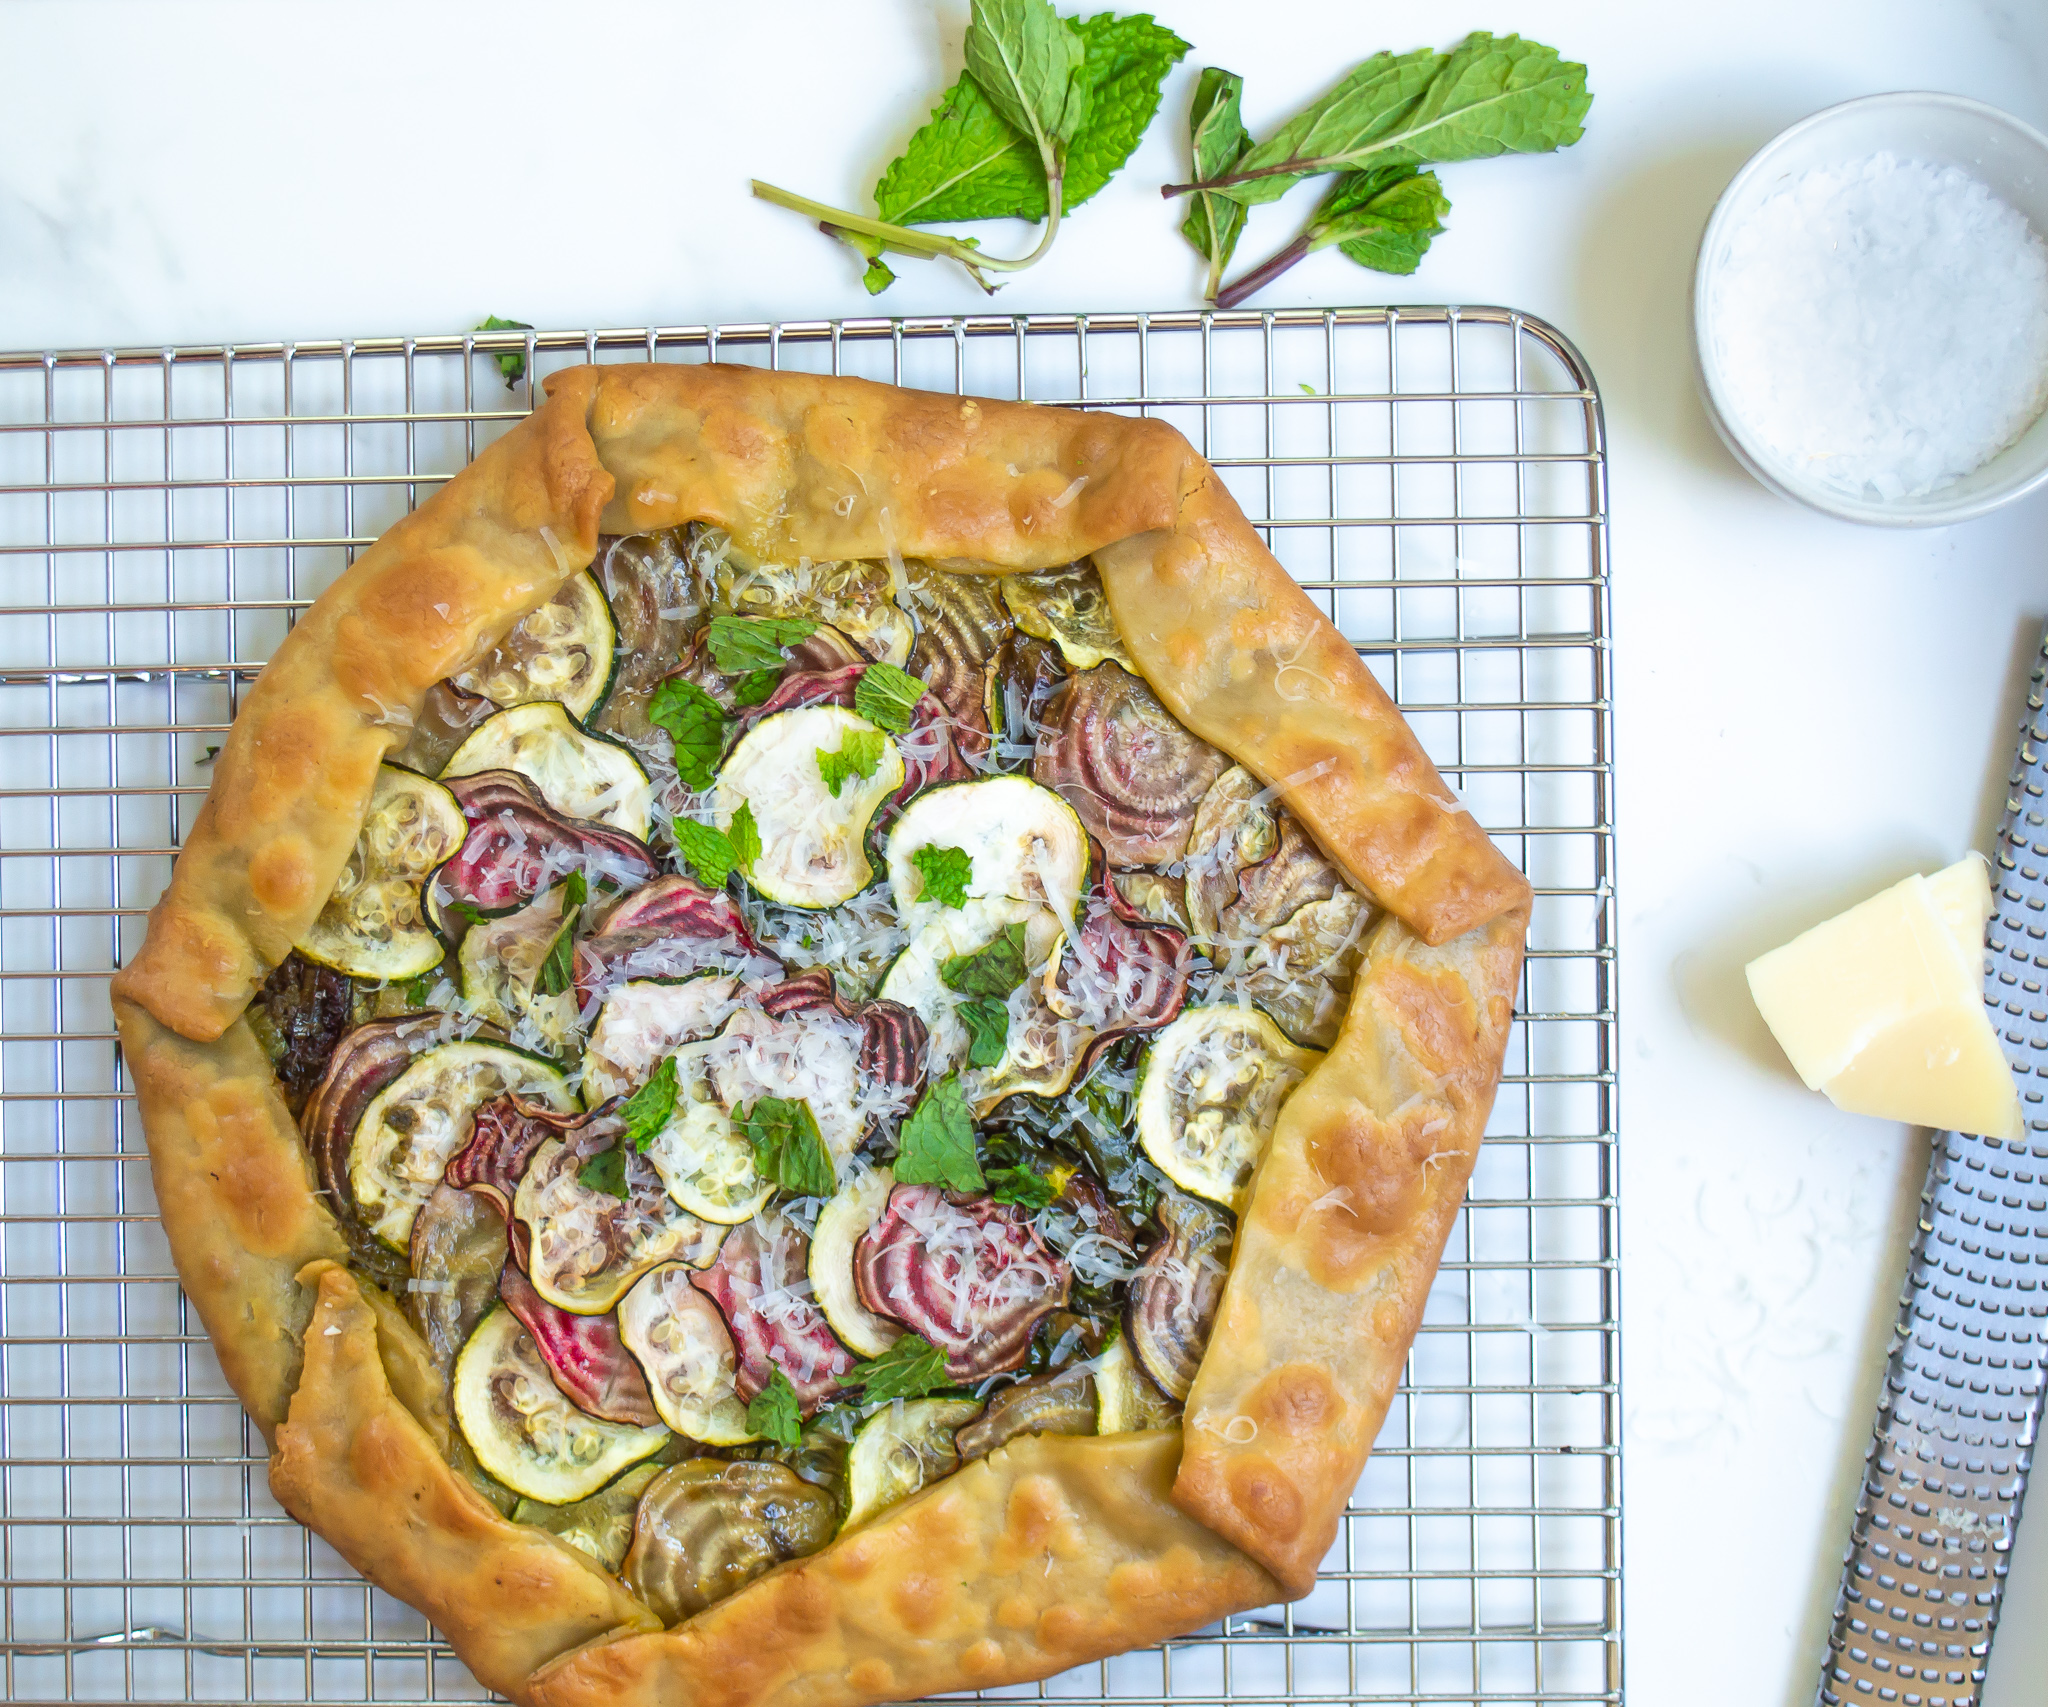 savory galette with beets, zucchini and parmesan